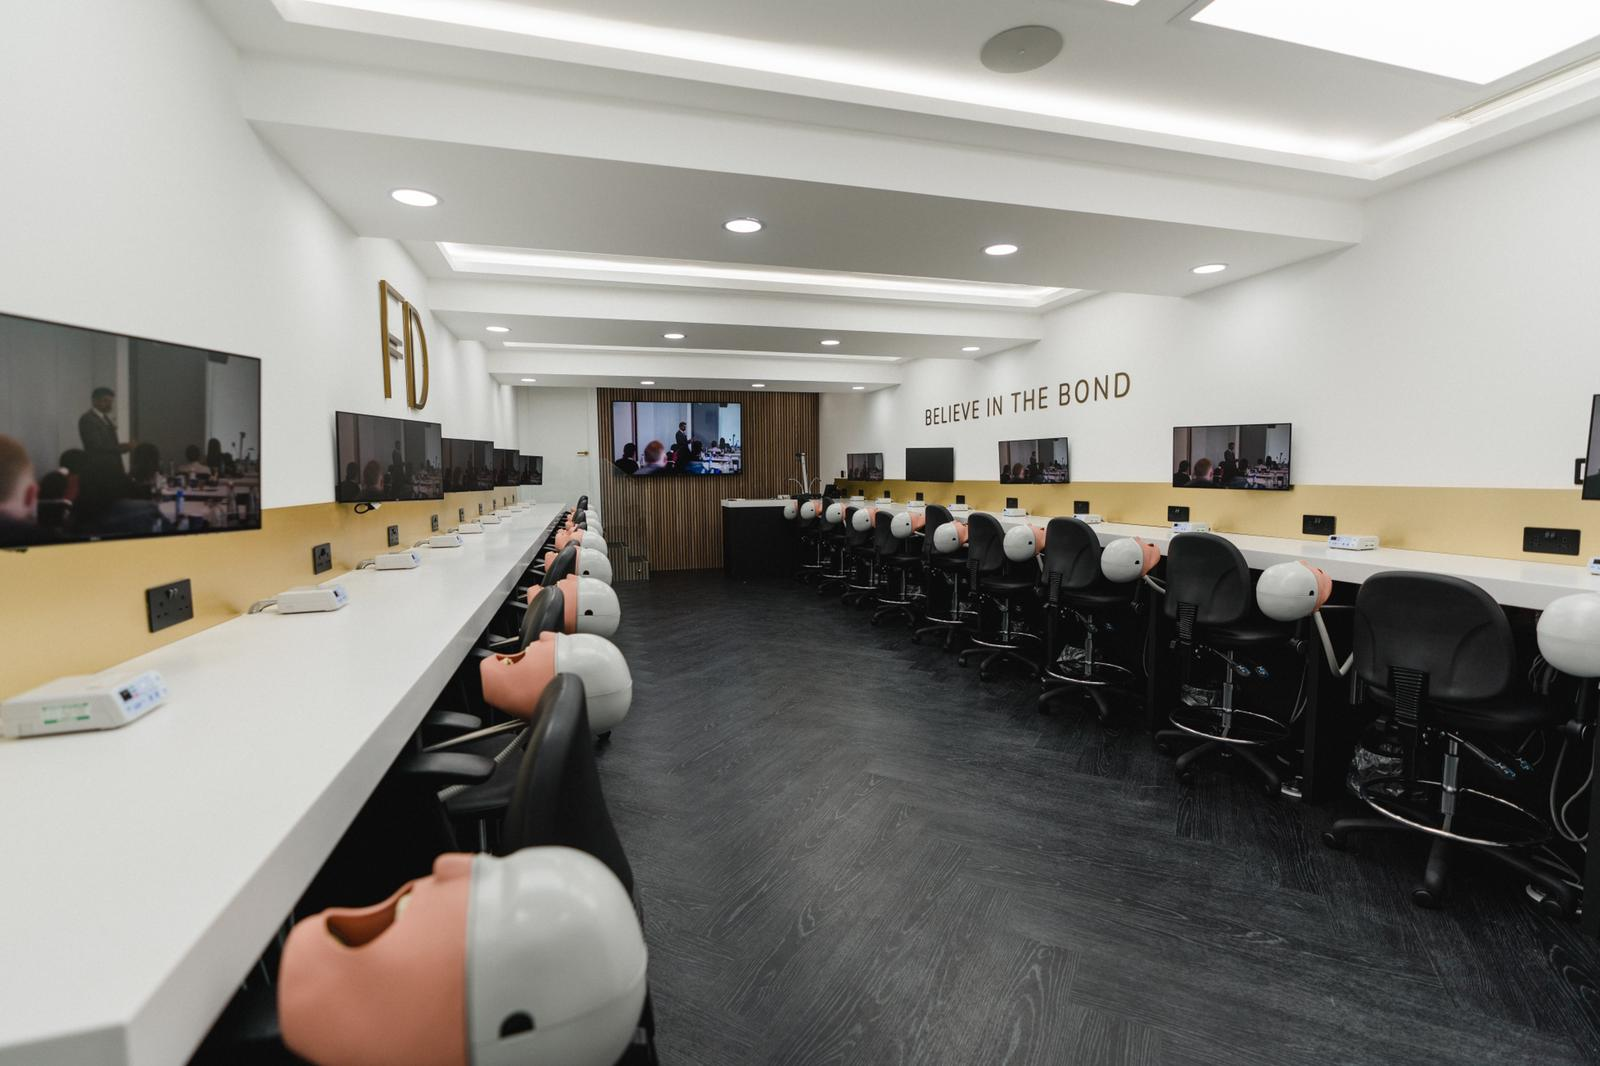 Take a look inside the new Freshdental Clinic and Institute